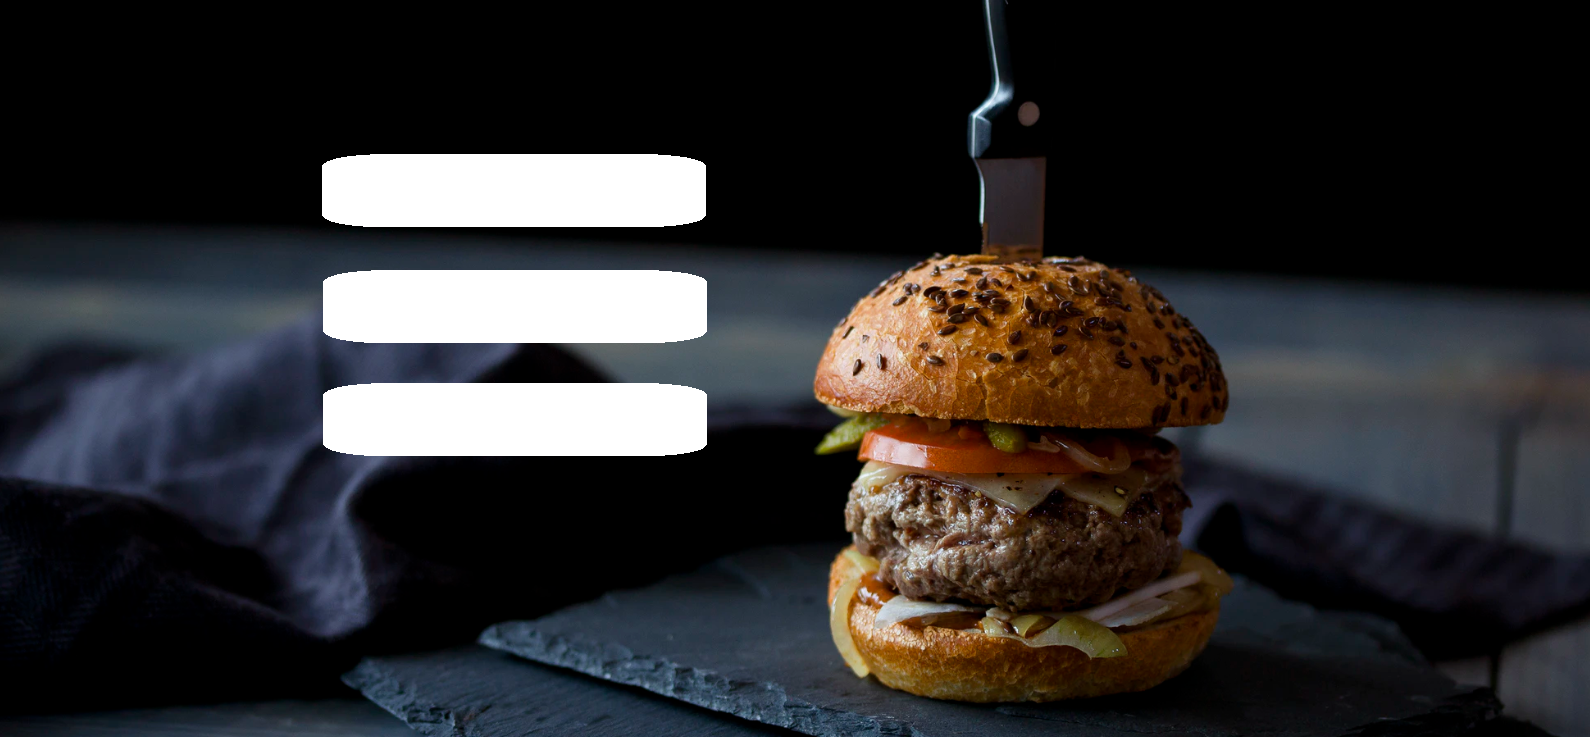 The Hamburger Icon: Does It Help or Hurt Revenue?